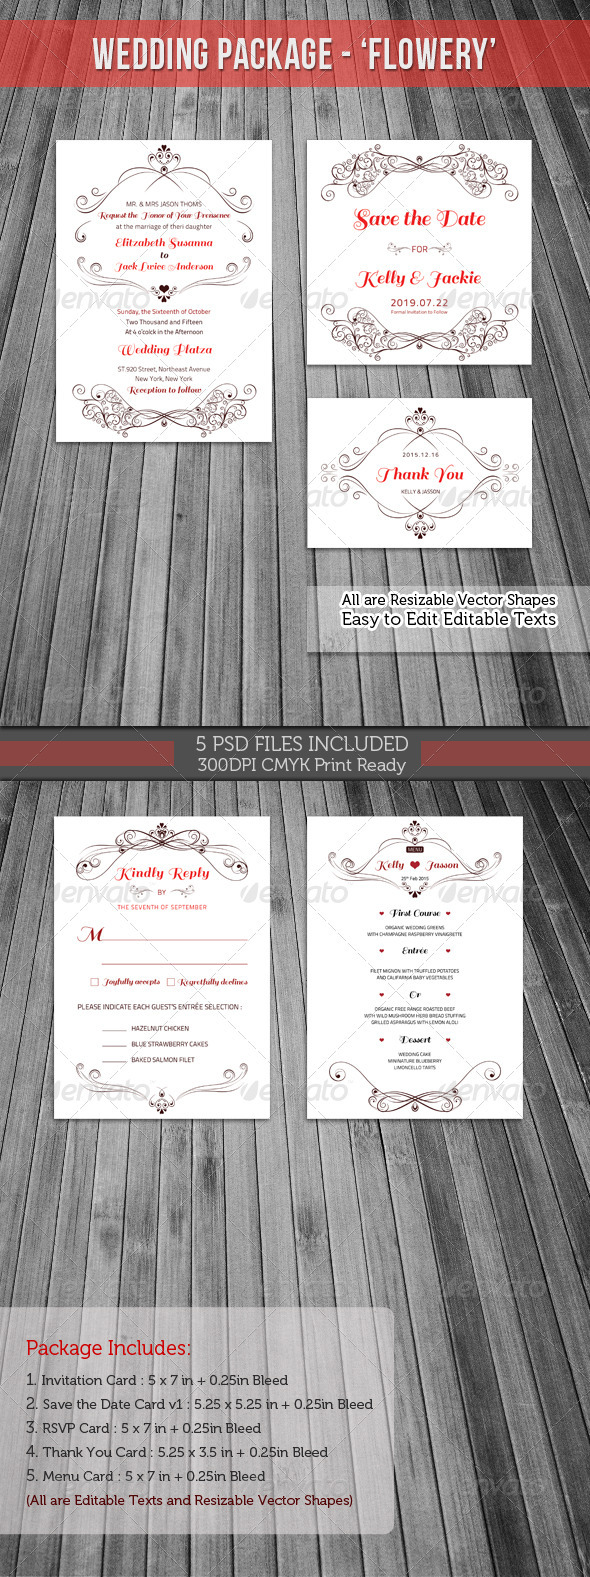 Wedding Invitation Package - Flowery - Weddings Cards & Invites